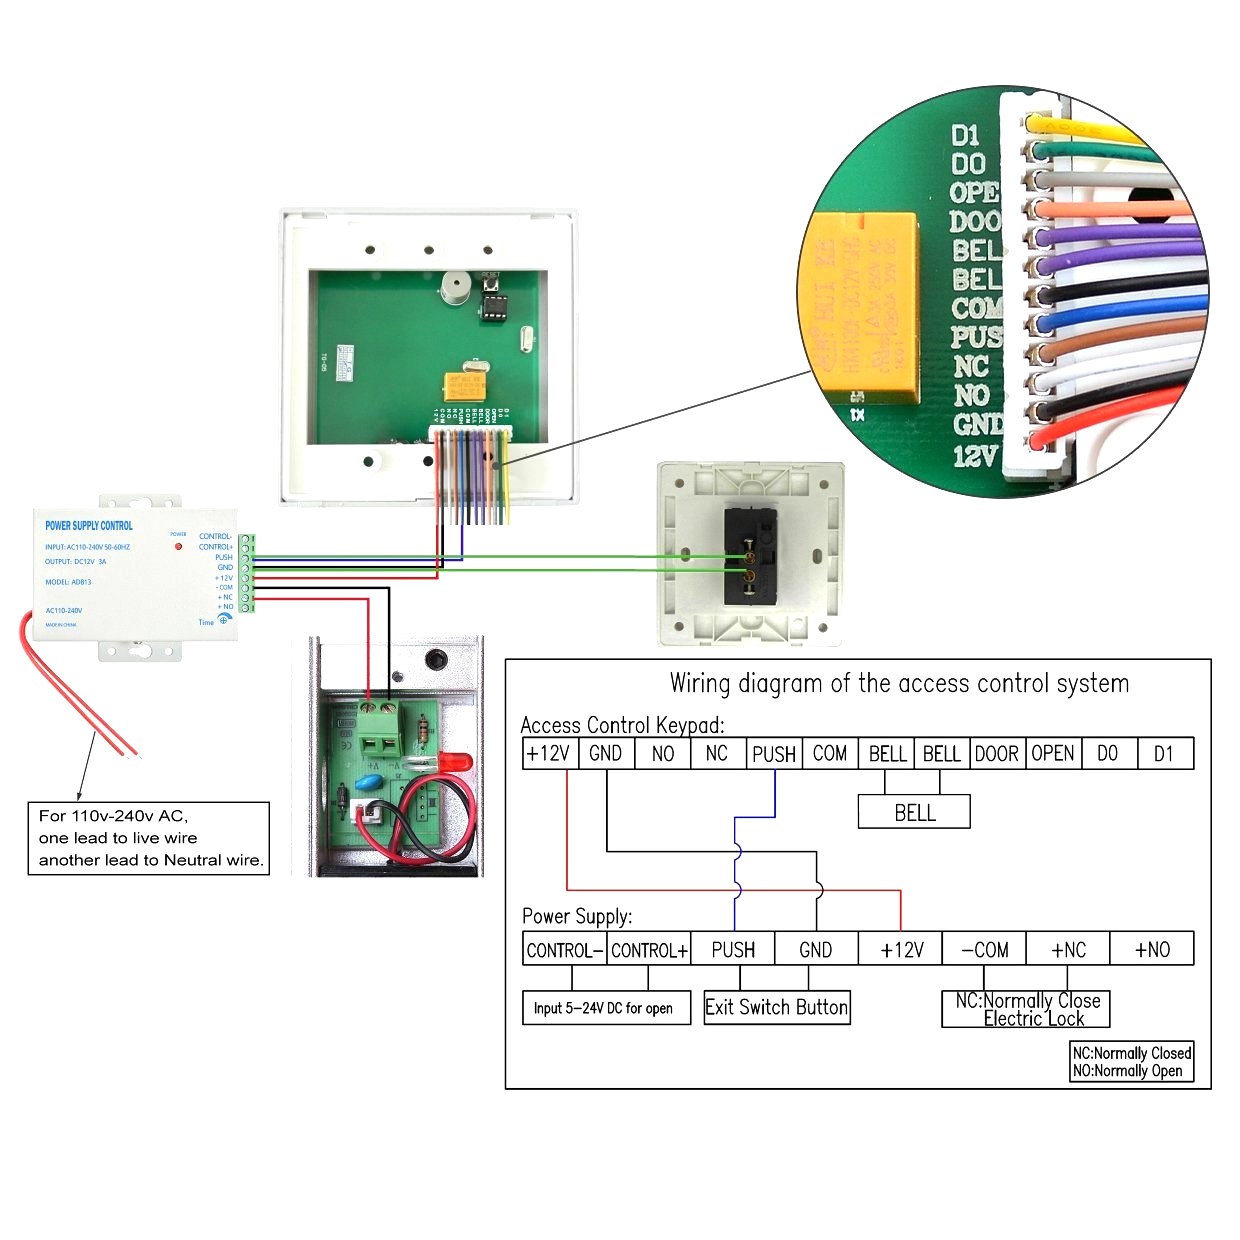 rfid access control wiring diagram Download-Access Control Door Wiring Diagram 14-j